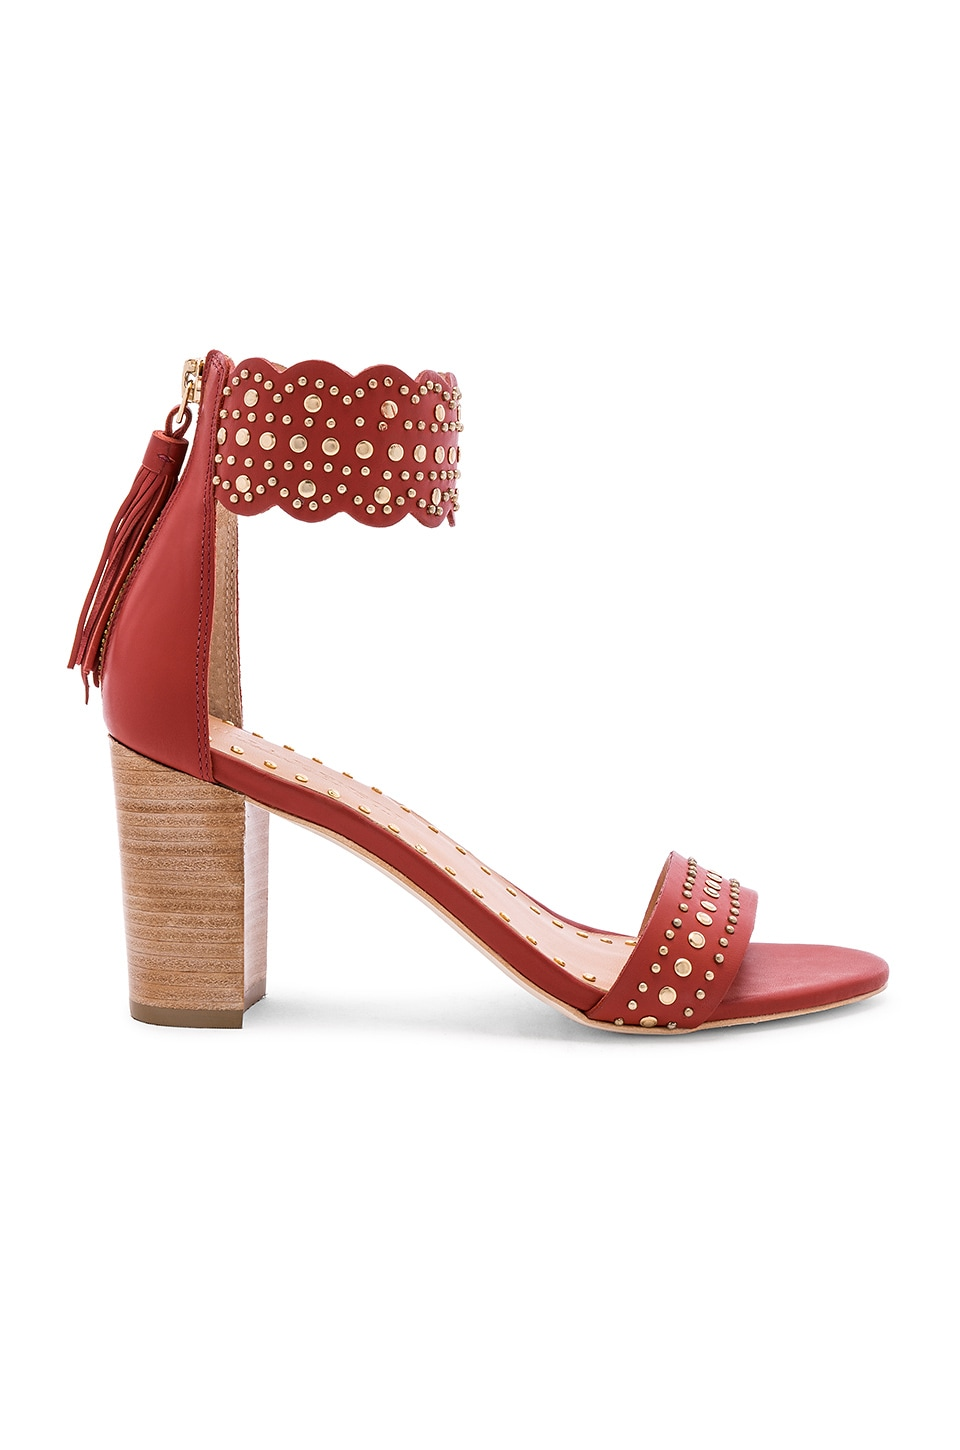 Ulla Johnson Solange Sandal in Cherry